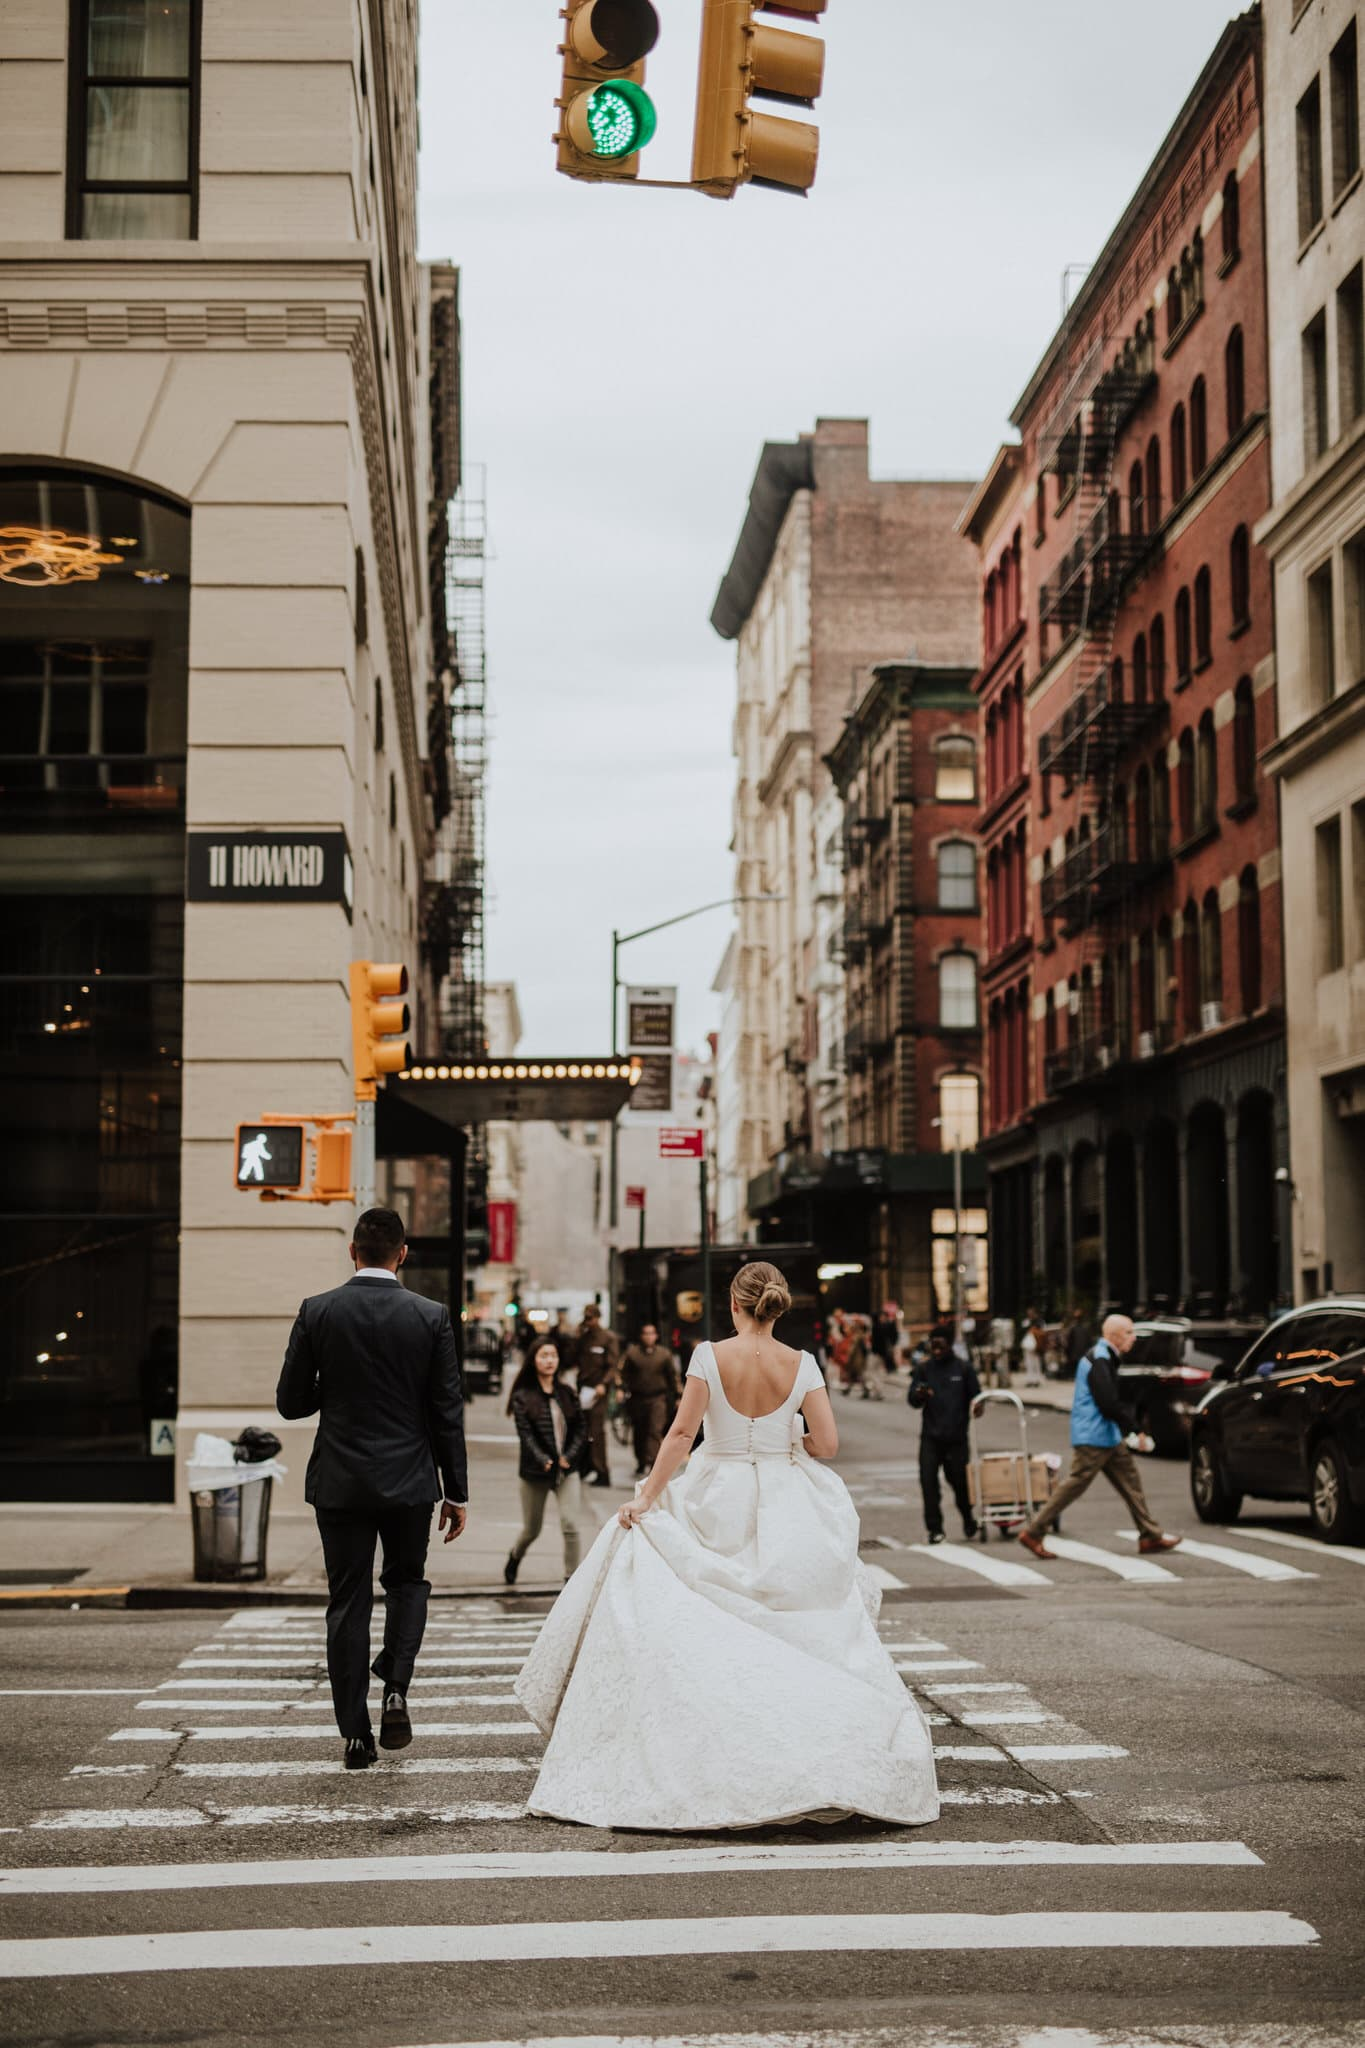 The bride and groom during their New York City Elopement. Wedding Photographer Brent Calis.